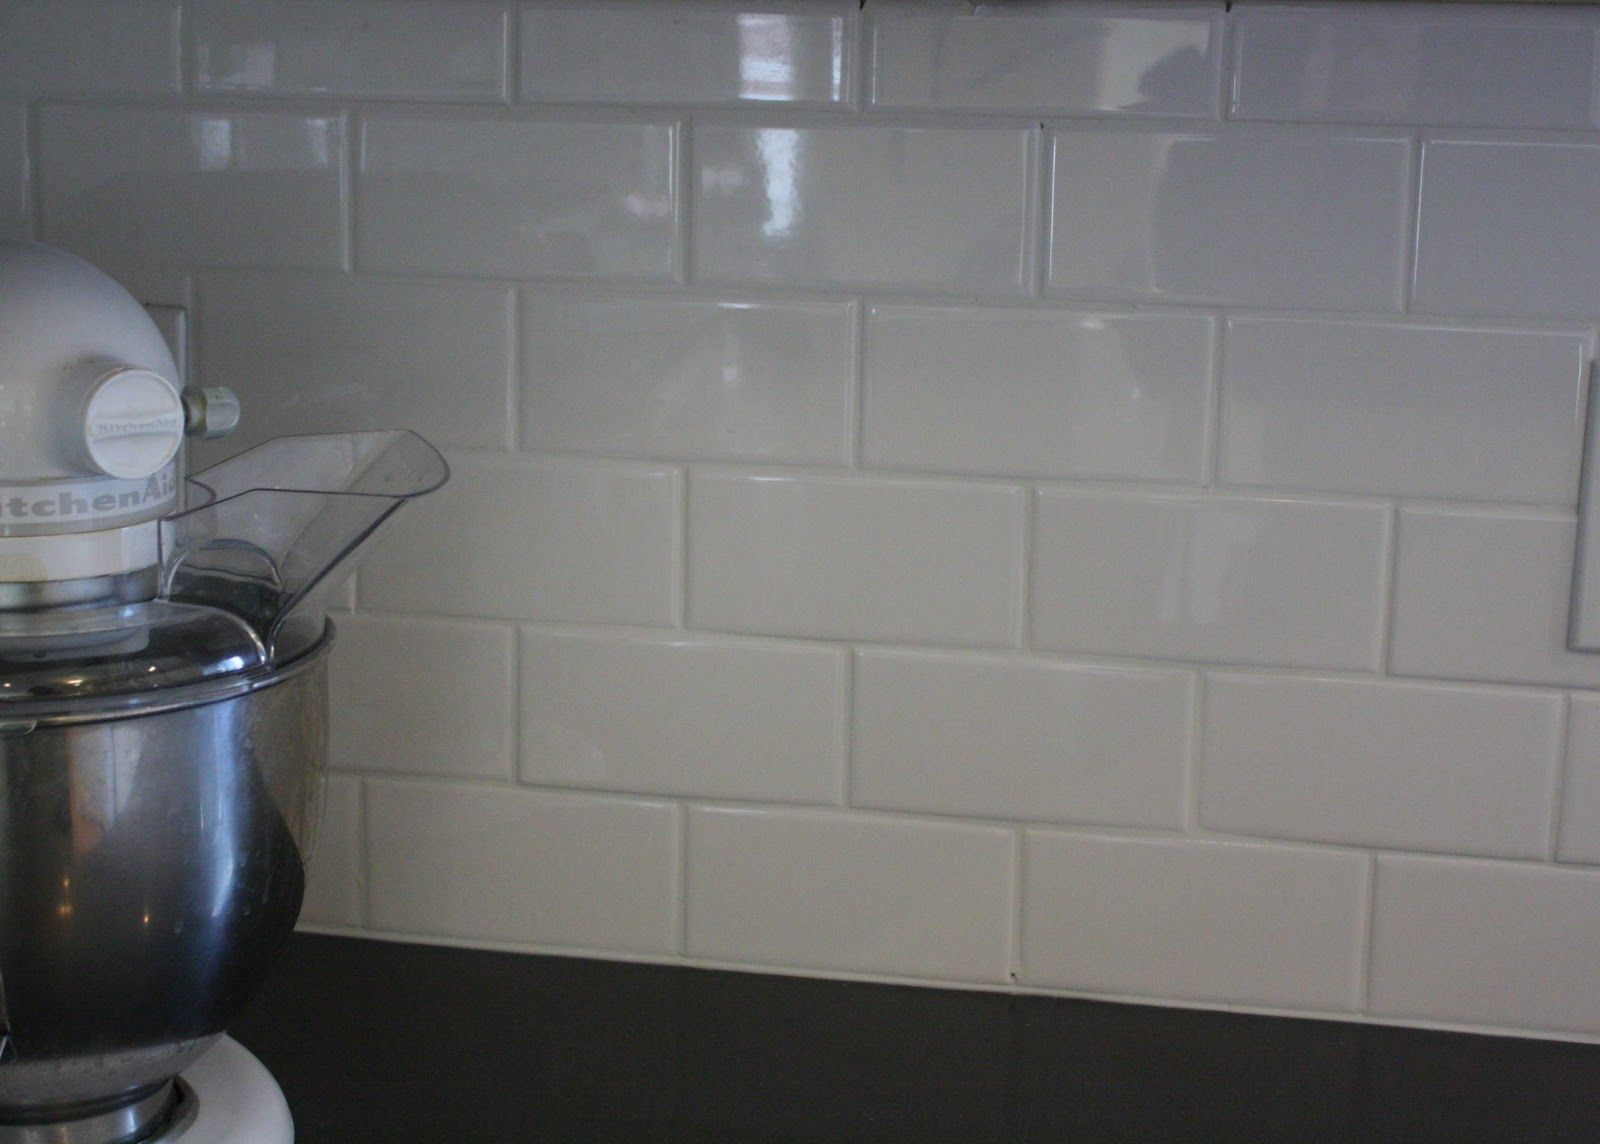 Kitchen Backsplash Grout Color no grout glass tile backsplash | love the pure white subway tile